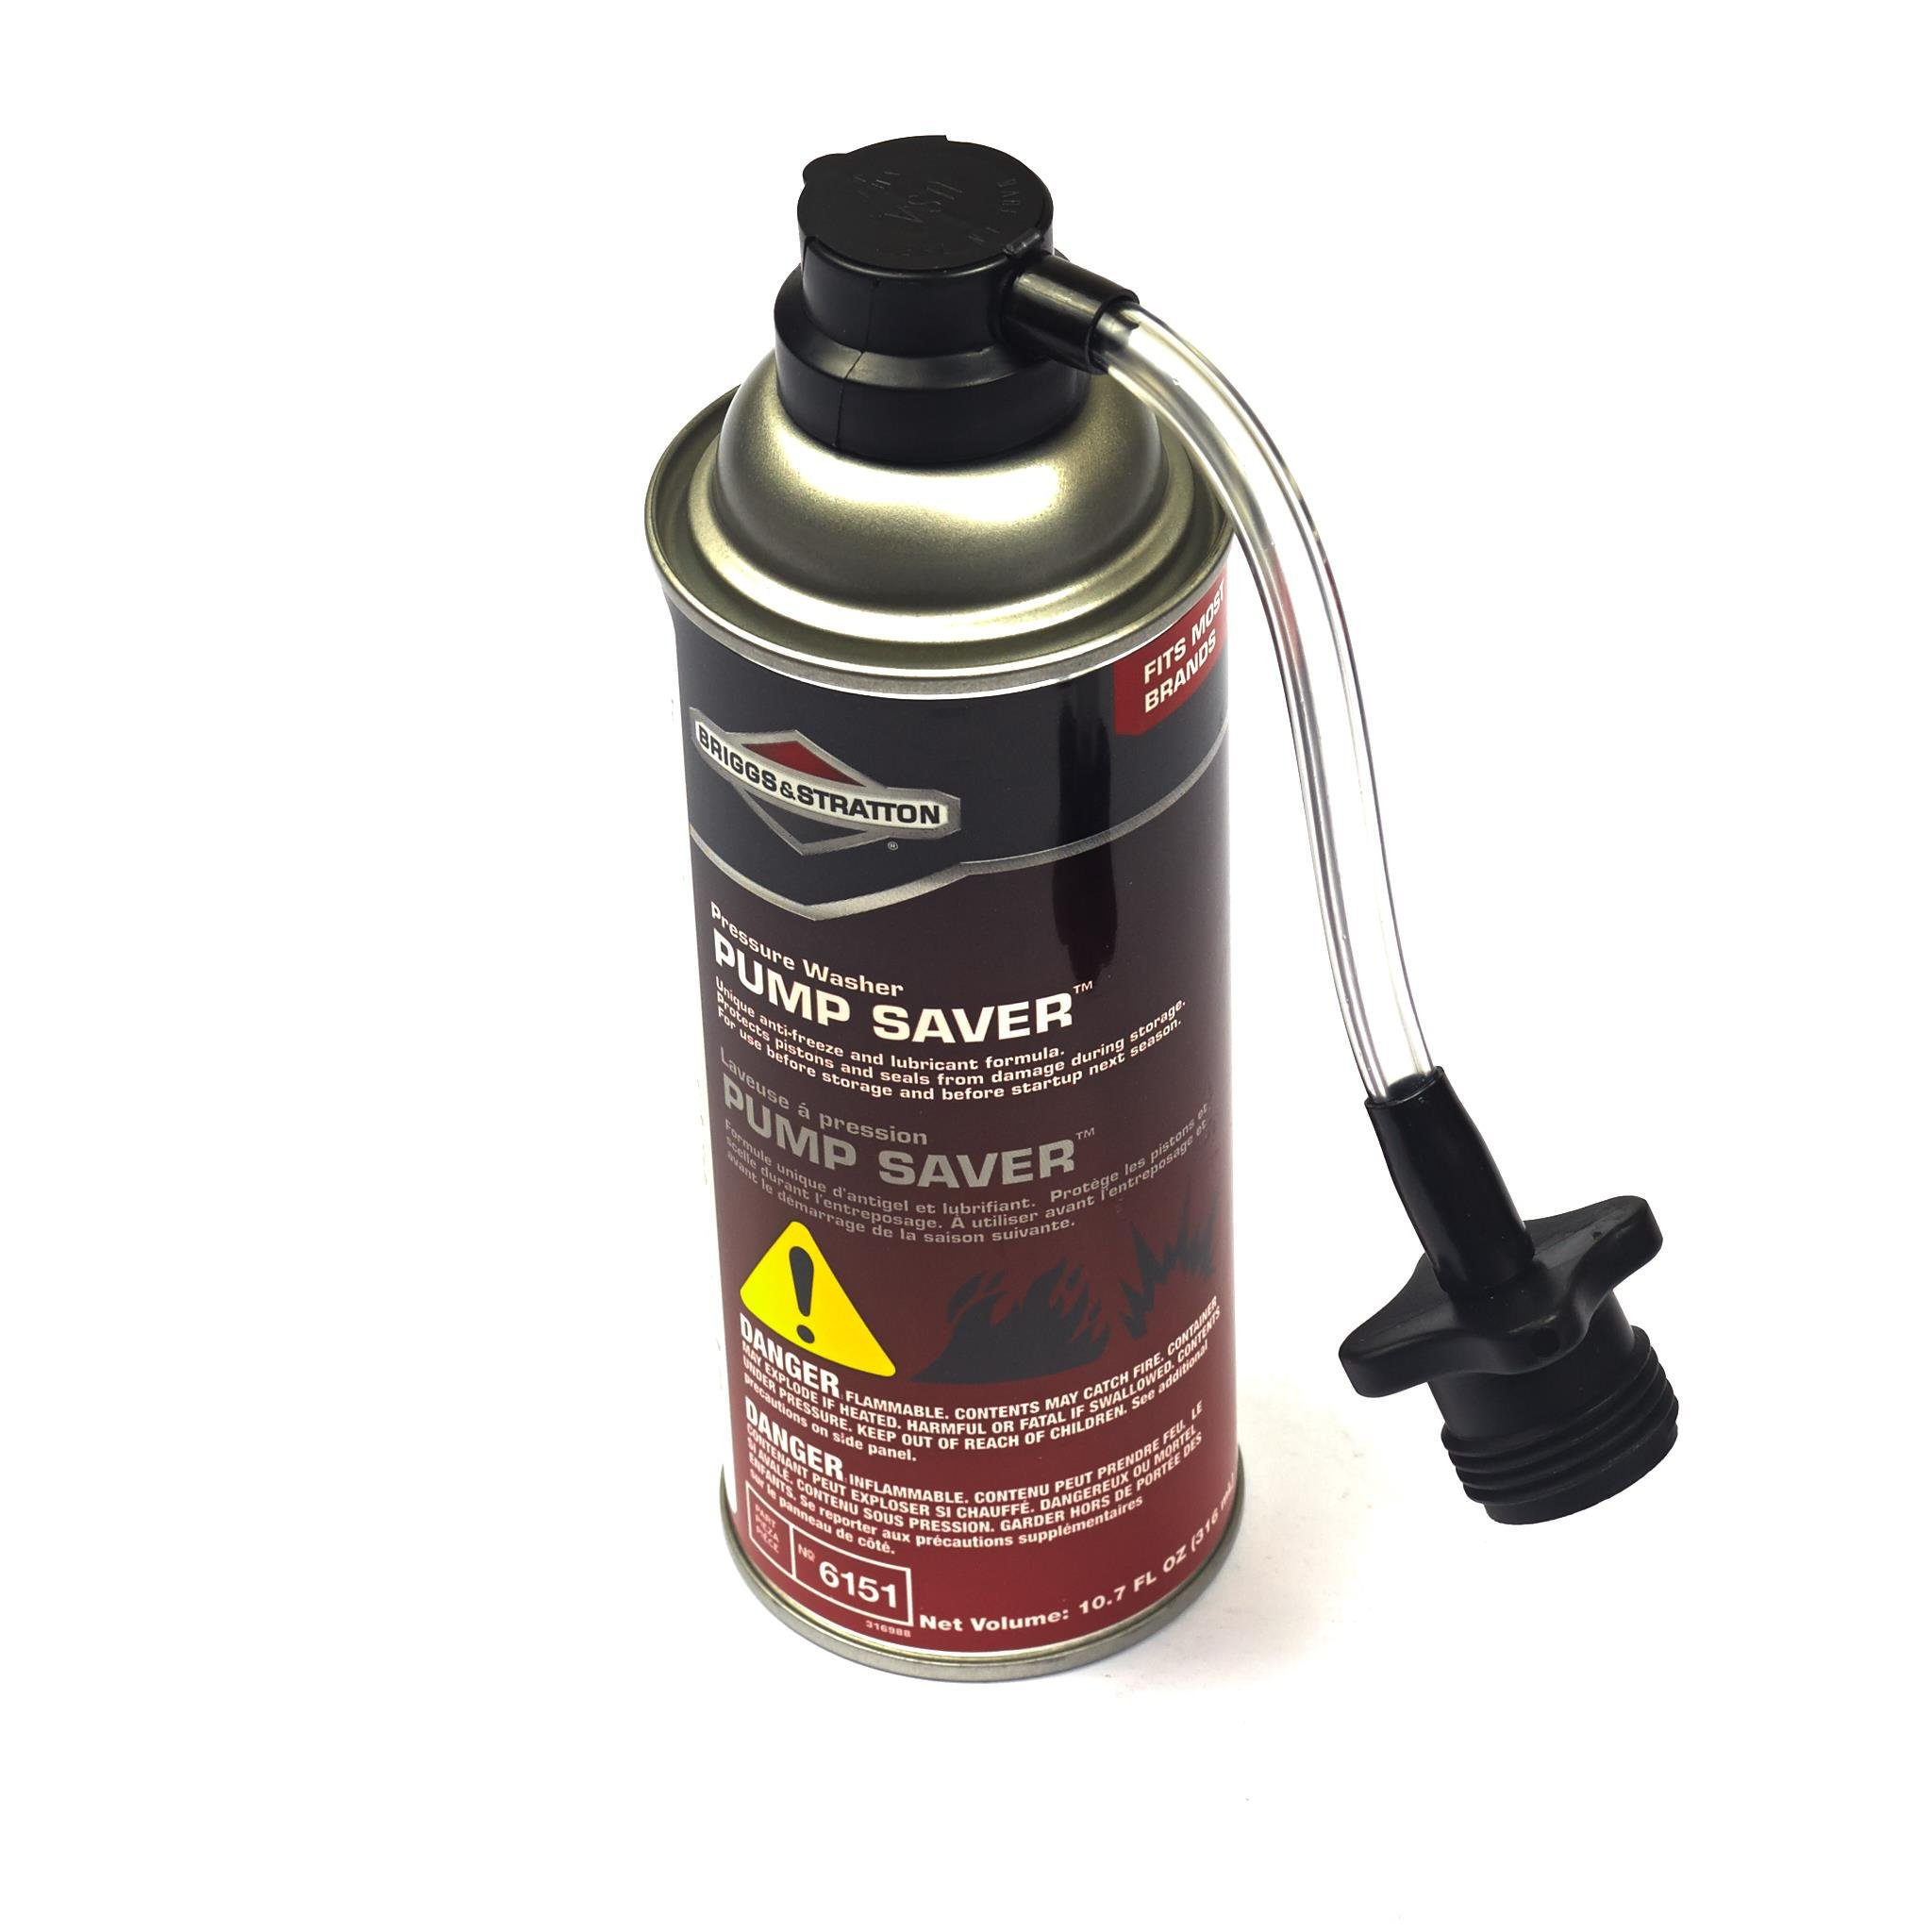 Briggs & Stratton 6151 Pressure Washer Pump Saver Anti-Freeze and Lubricant Formula, 10.7-Ounce